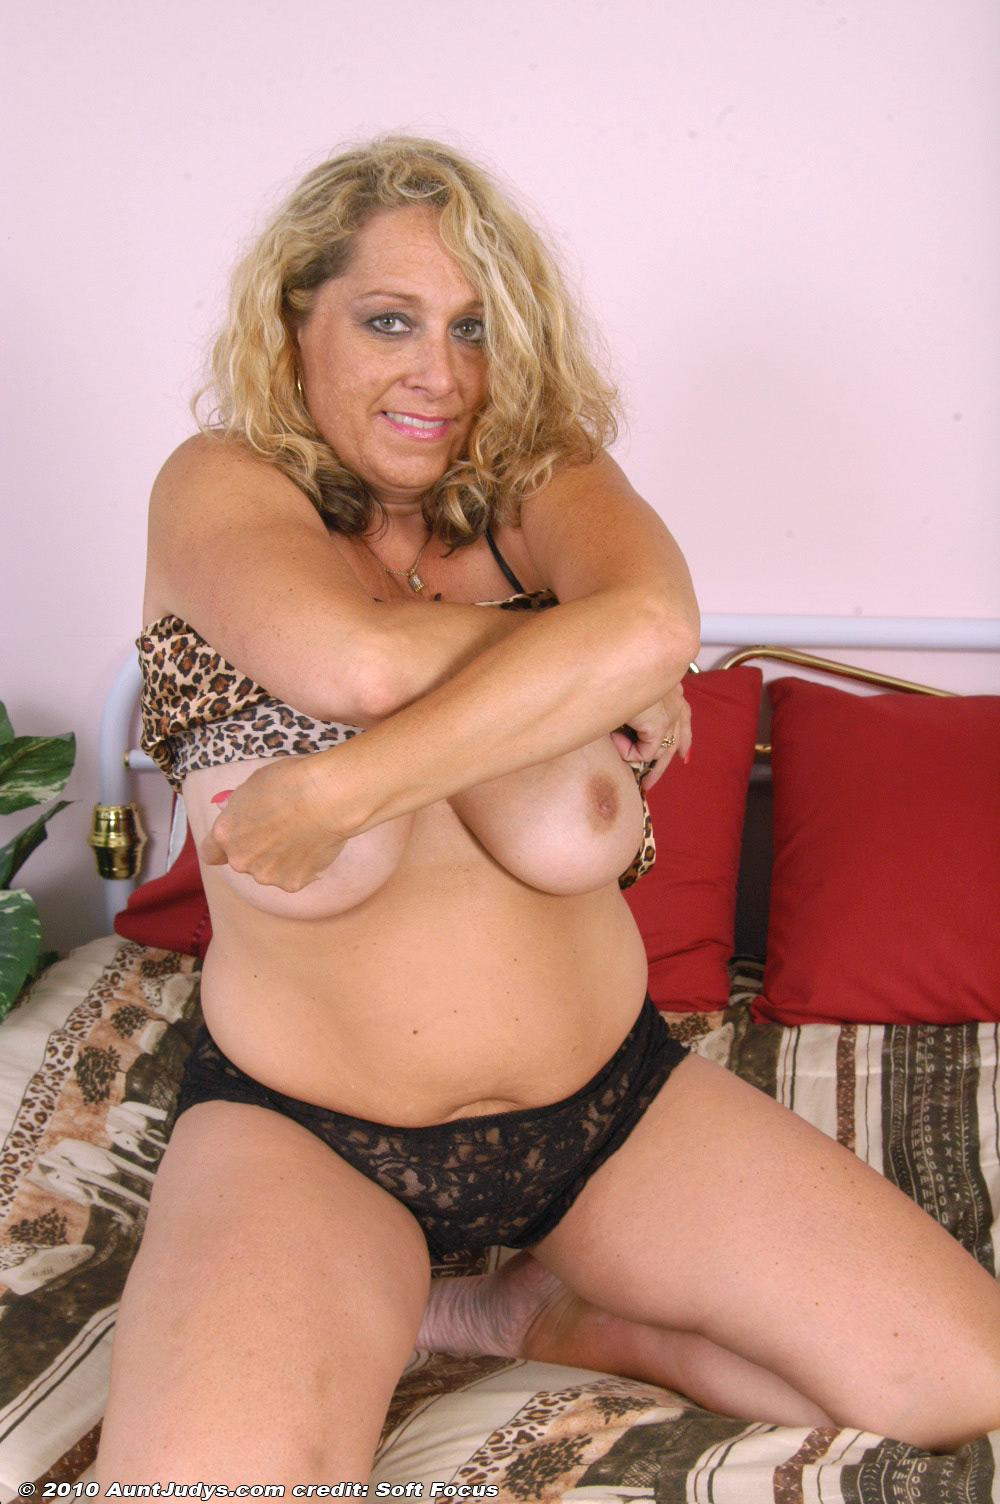 Chunky Older Golden-Haired Woman Peeling Off Lingerie And -6776